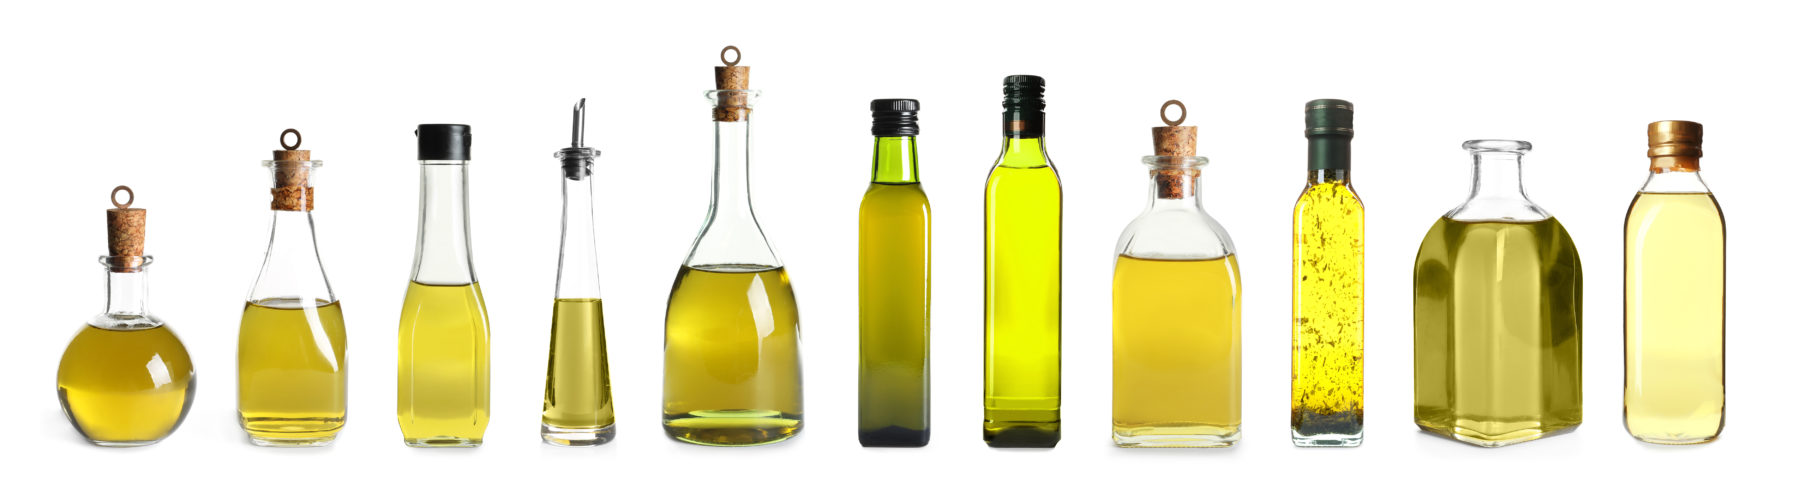 A row of olive oil bottles